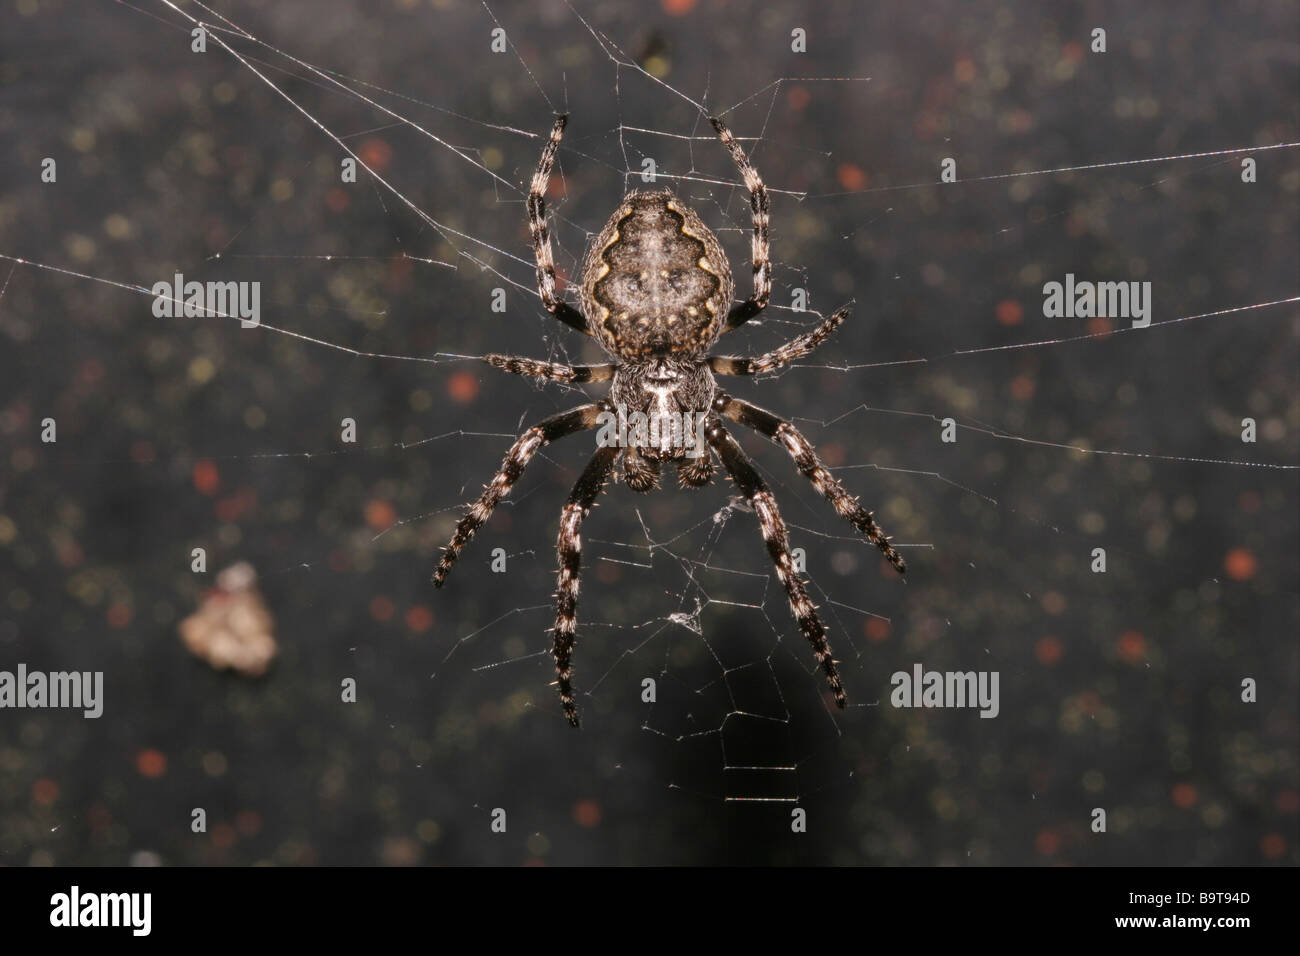 Walnut orb weaver Nuctenea umbratica Araneidae in her web at night in a greenhouse UK - Stock Image